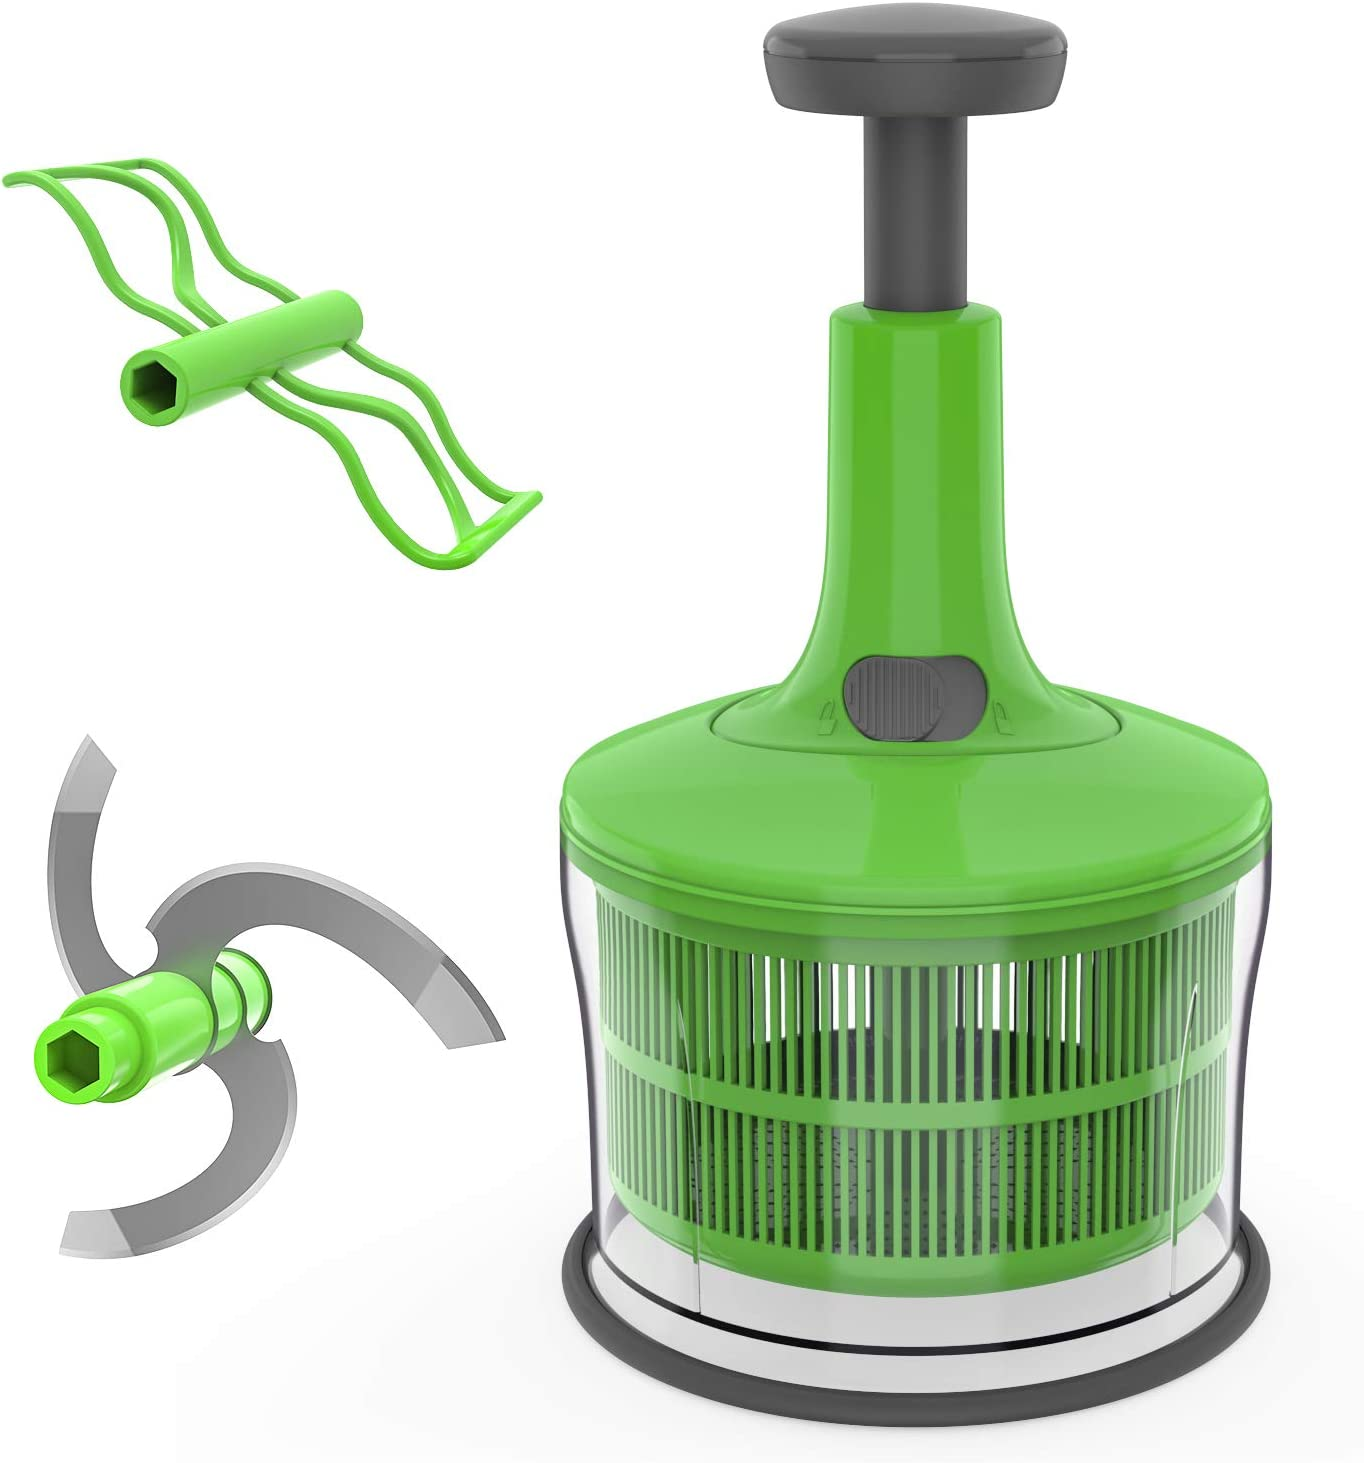 Mohist Hand-Press Food Chopper/Vegetable Cutter,Mini Mincer & Egg Mixer & Salad Spinner (3 in 1) Set,6-Cup,Green/Grey